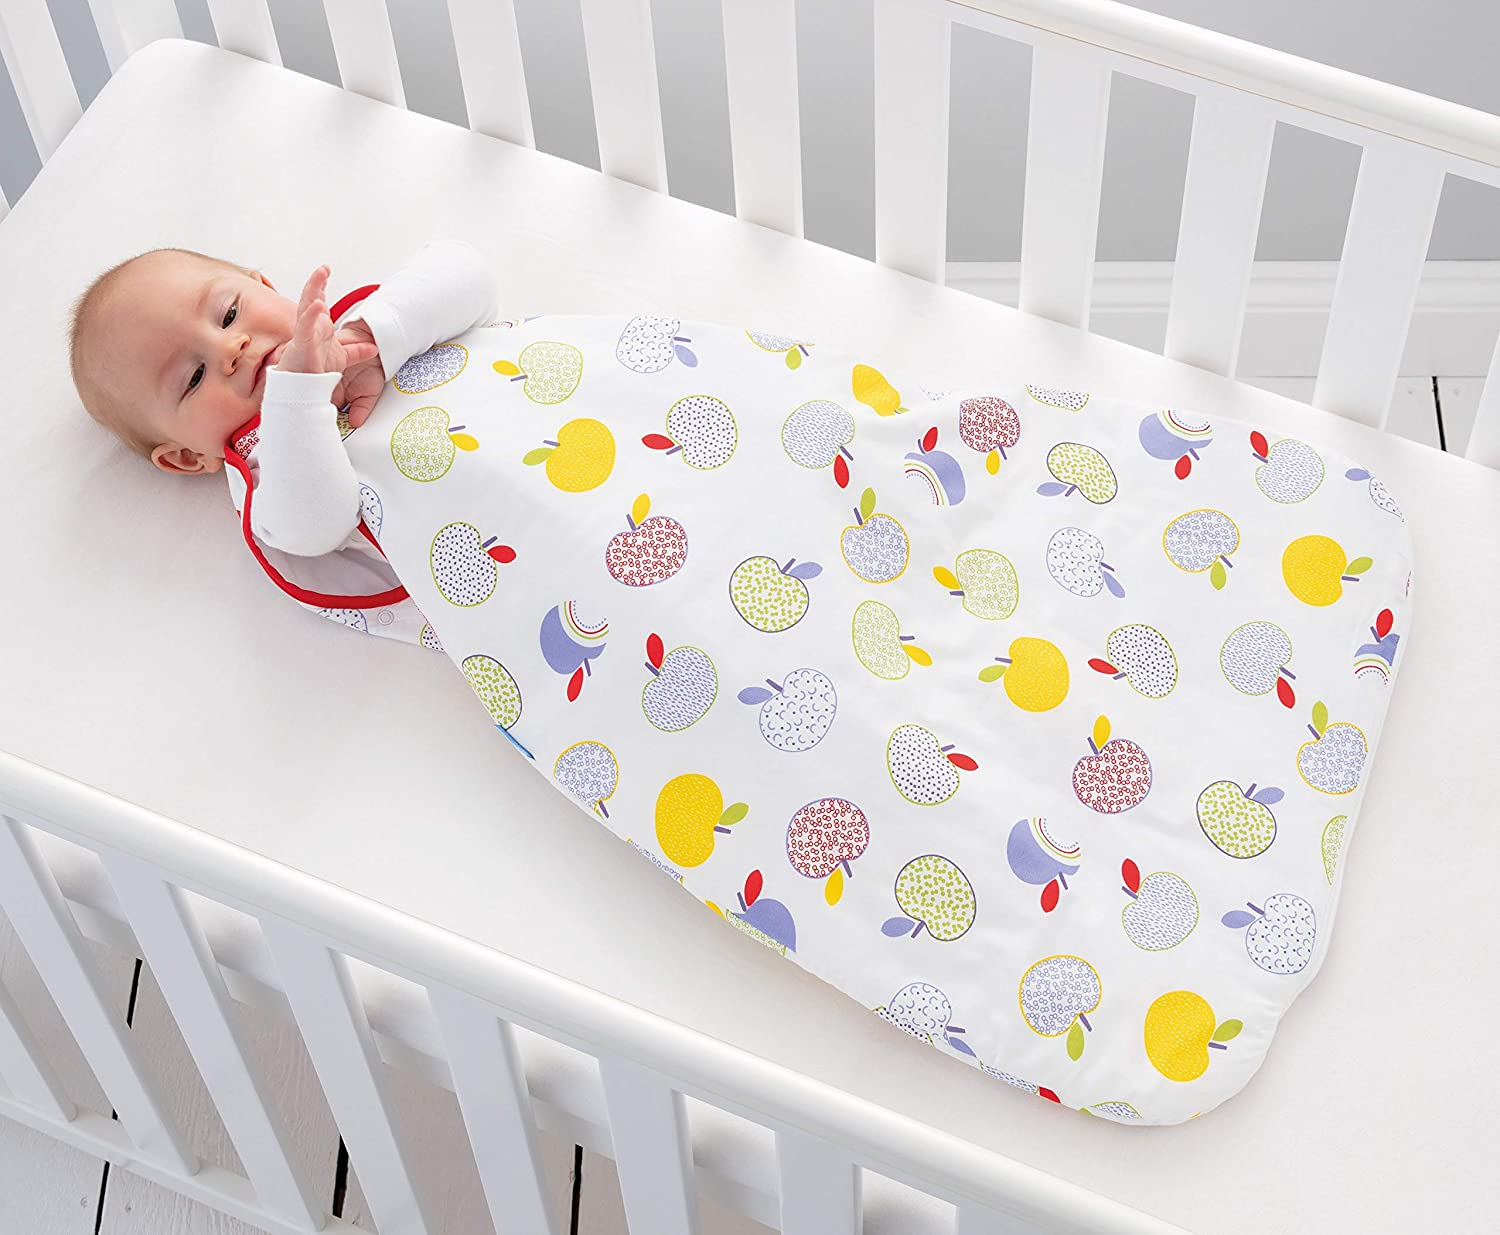 Grobag Baby NB862 Cotton 2.5 Tog Sleeping Bags Twin Pack 18 to 36 Months Multi Coloured Apple Days Design